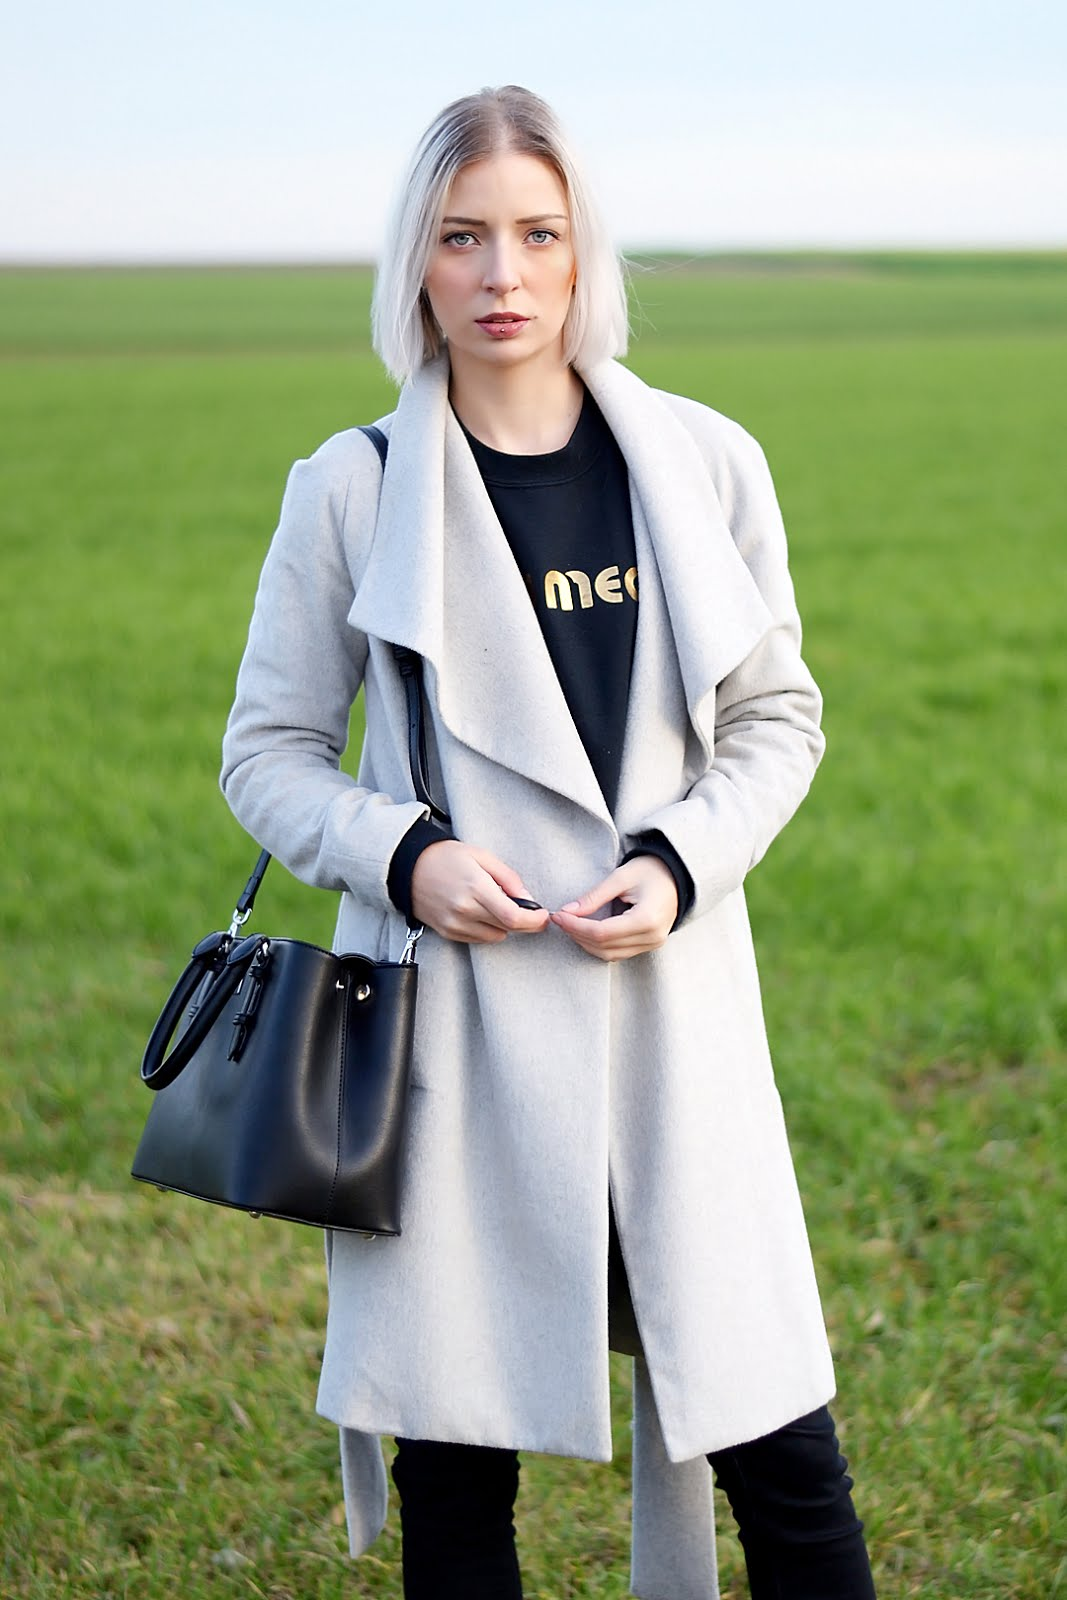 Grey coat, mac b bag, chatswood, bryan lichtenberg sweater, golden details, outfit, ootd